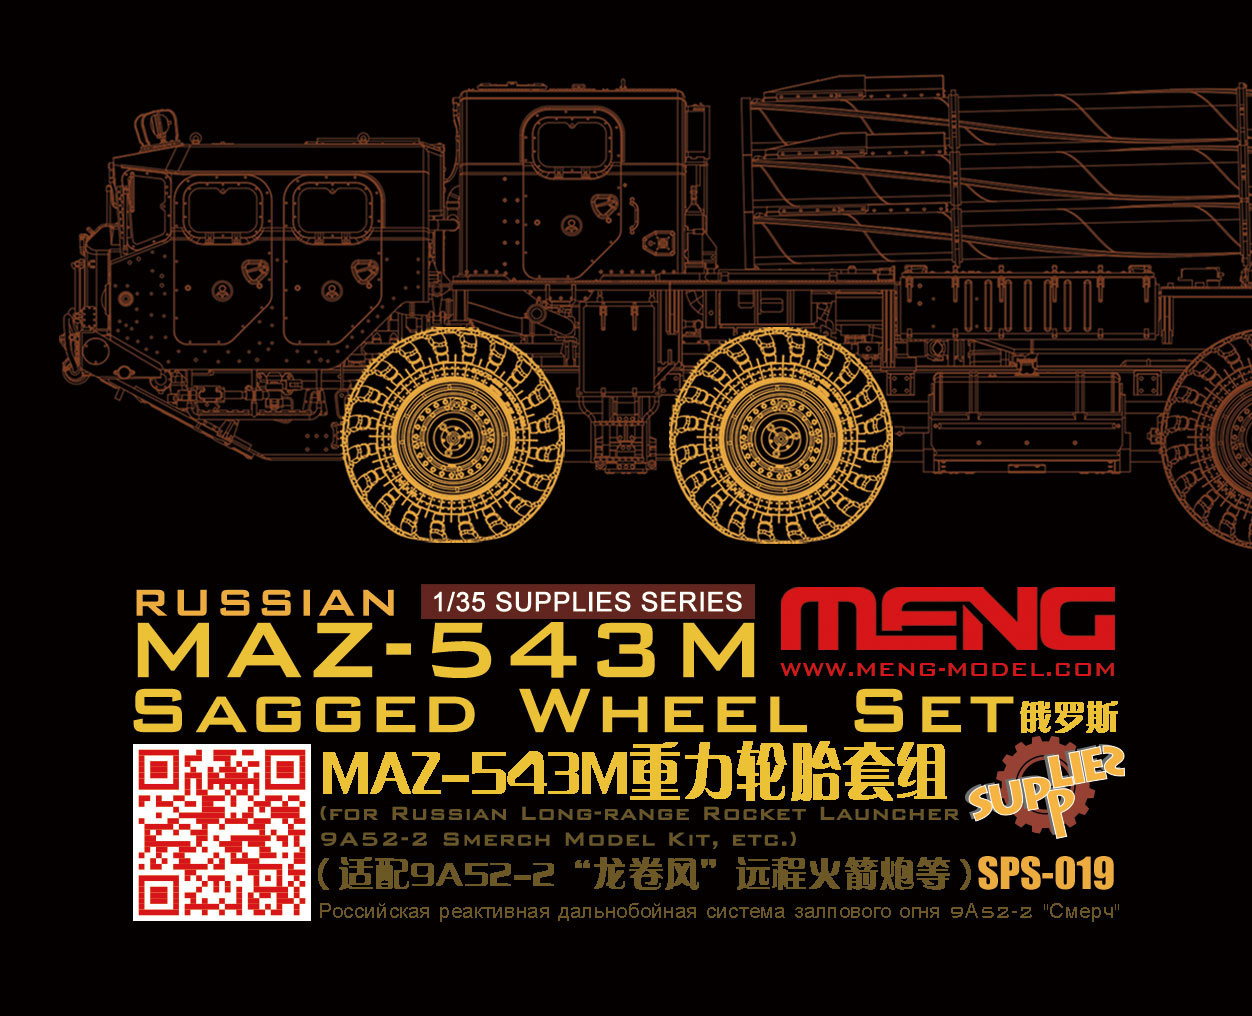 Meng 1/35 RUSSIAN MAZ-543M SAGGED WHEEL SET (RESIN)